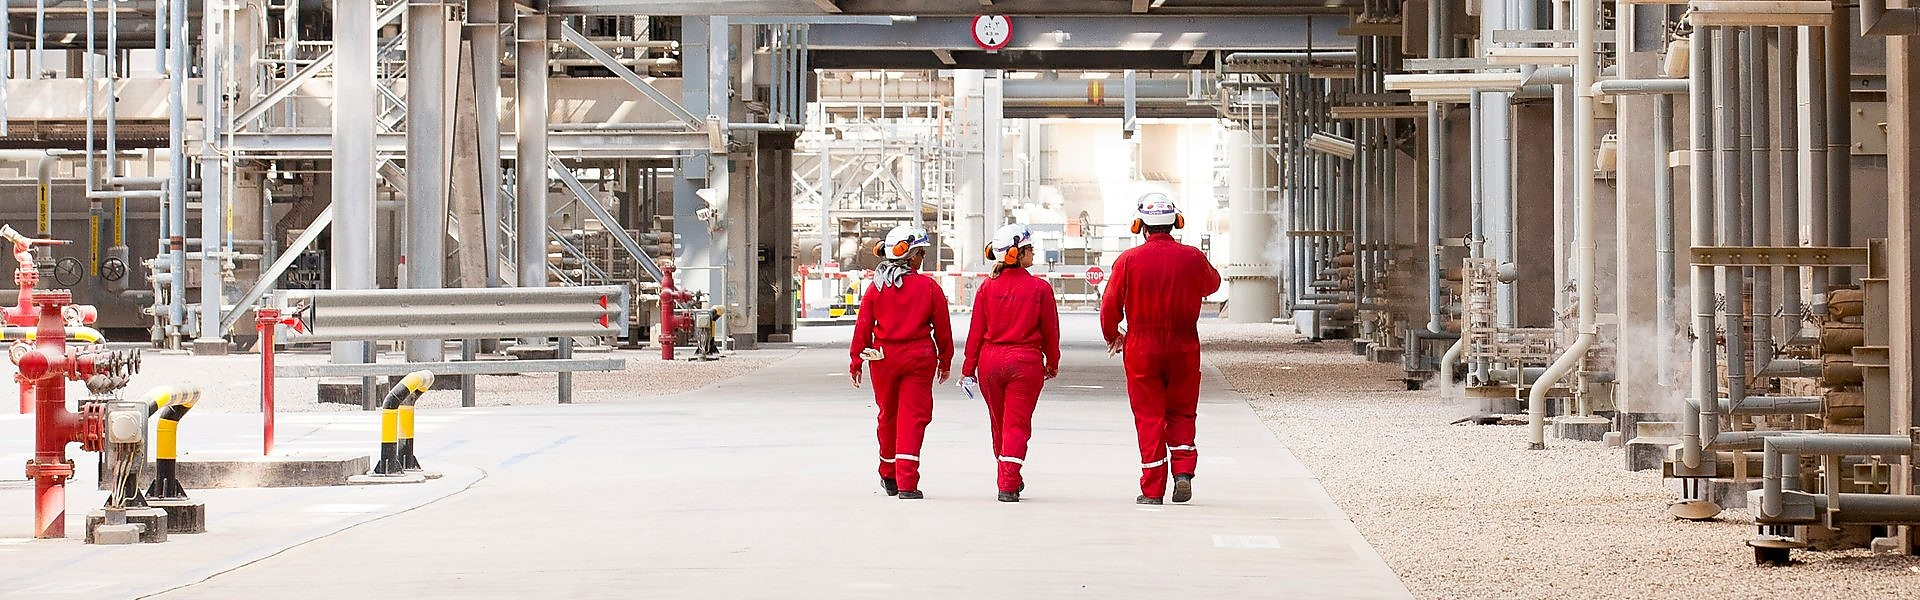 Three engineers walking on site through a refinery